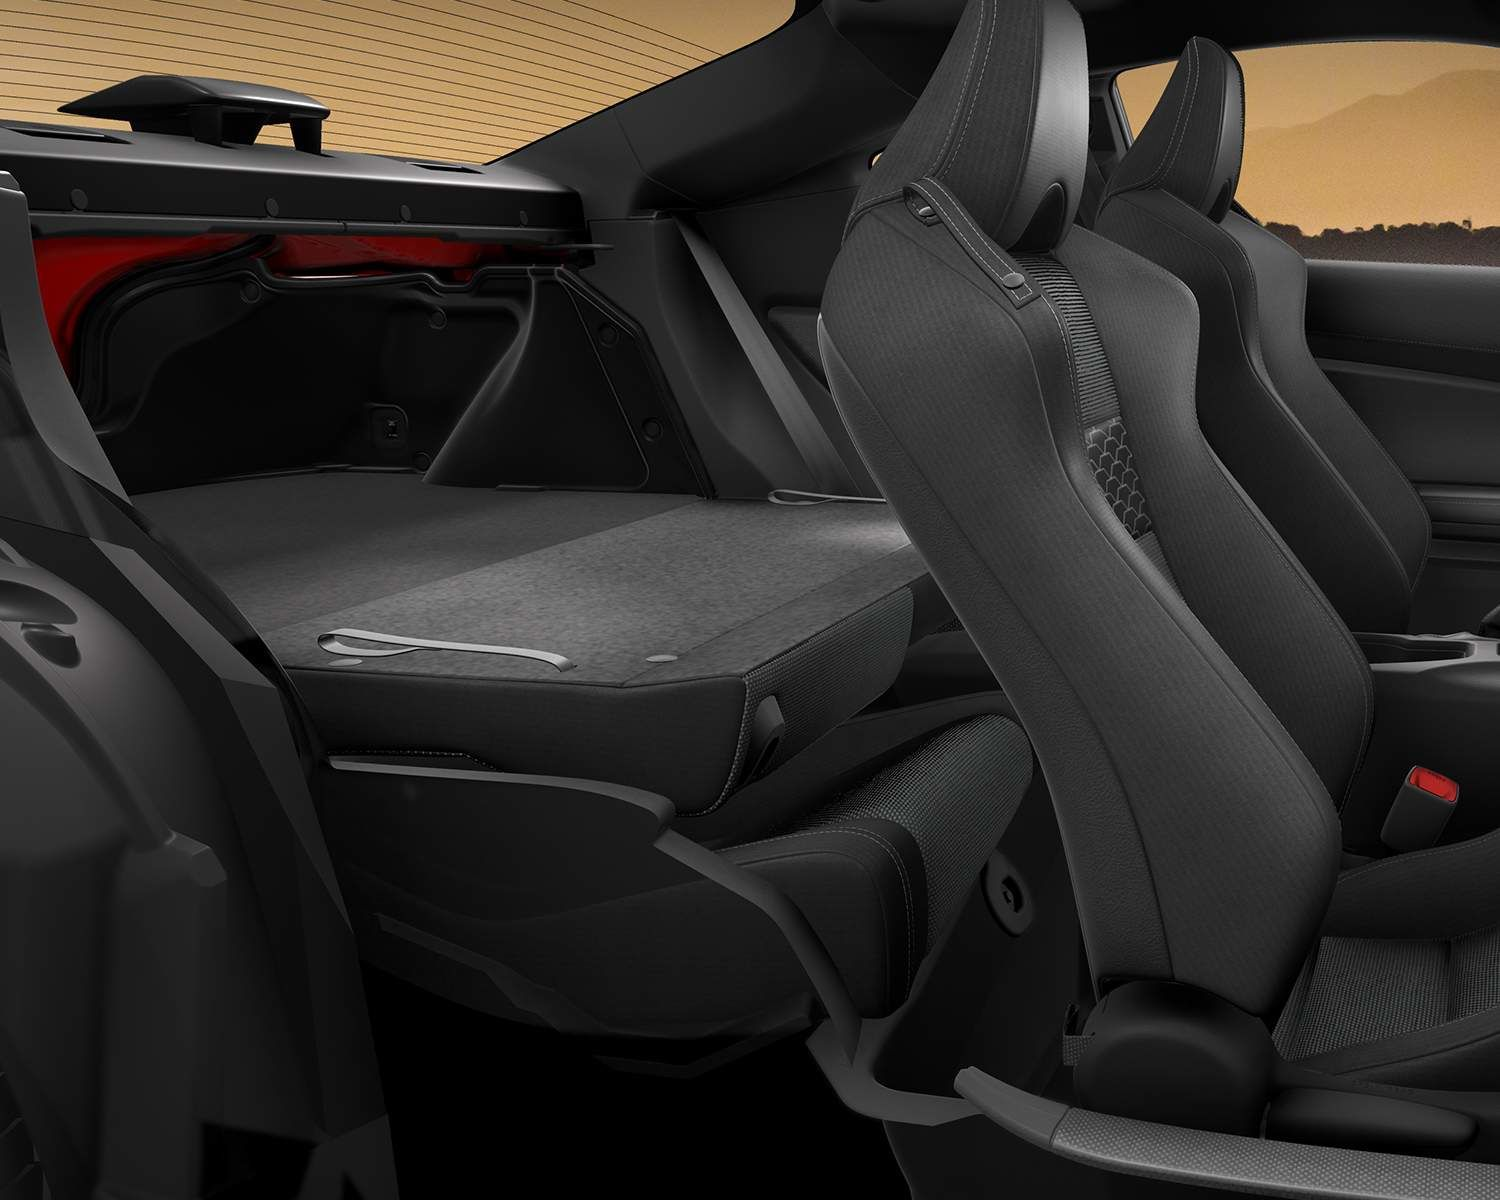 Toyota 86 Interior Seating and Cargo Space